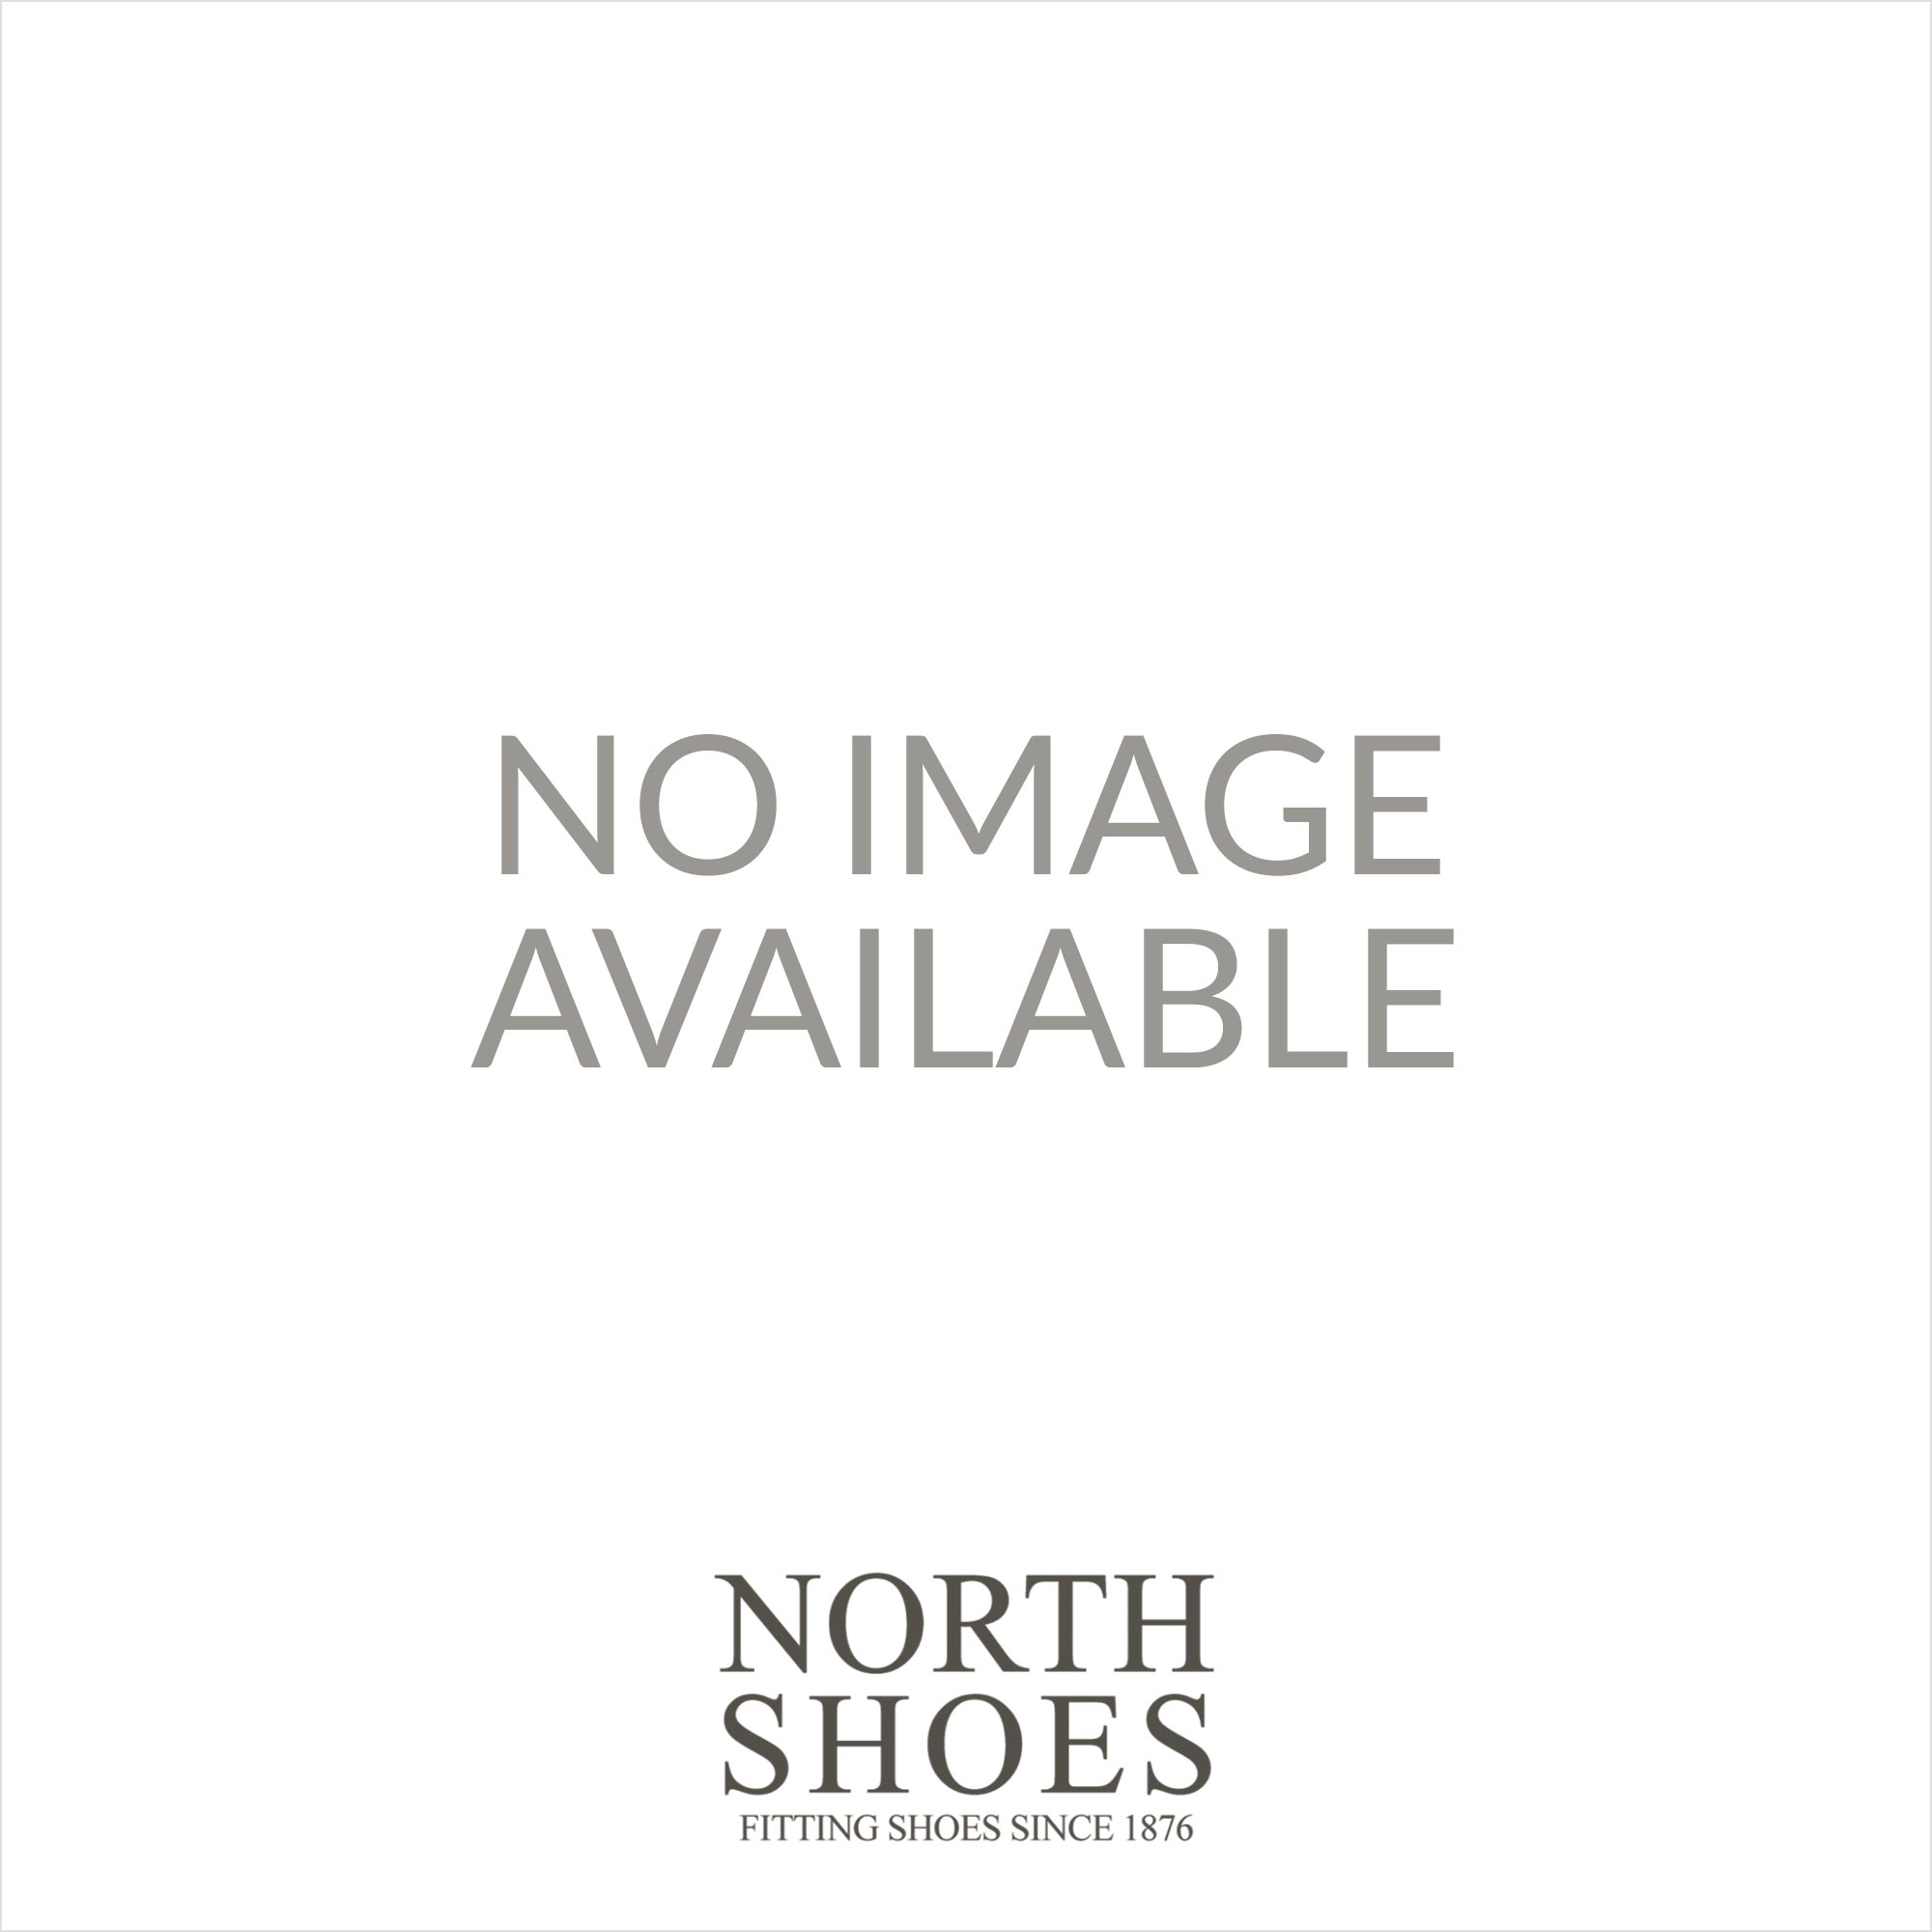 fae931c91c8 Mens Clarks Griffin Mia Black Leather Womens T Bar Fringed Shoes ...